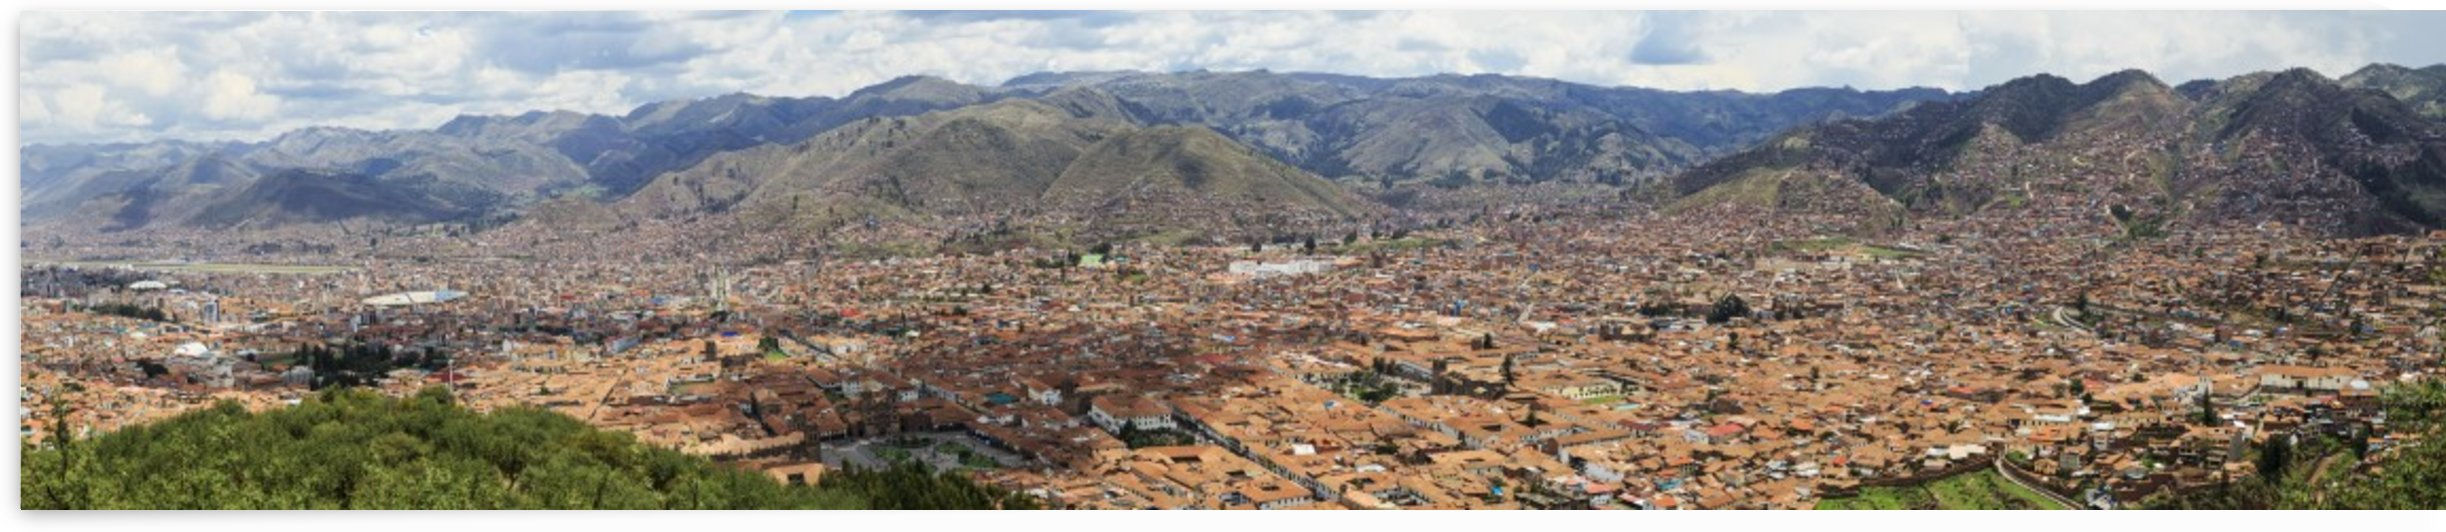 Cusco, Peruvian city panorama from Saksaywaman with airport and soccer stadium on left; Cusco, Peru by PacificStock